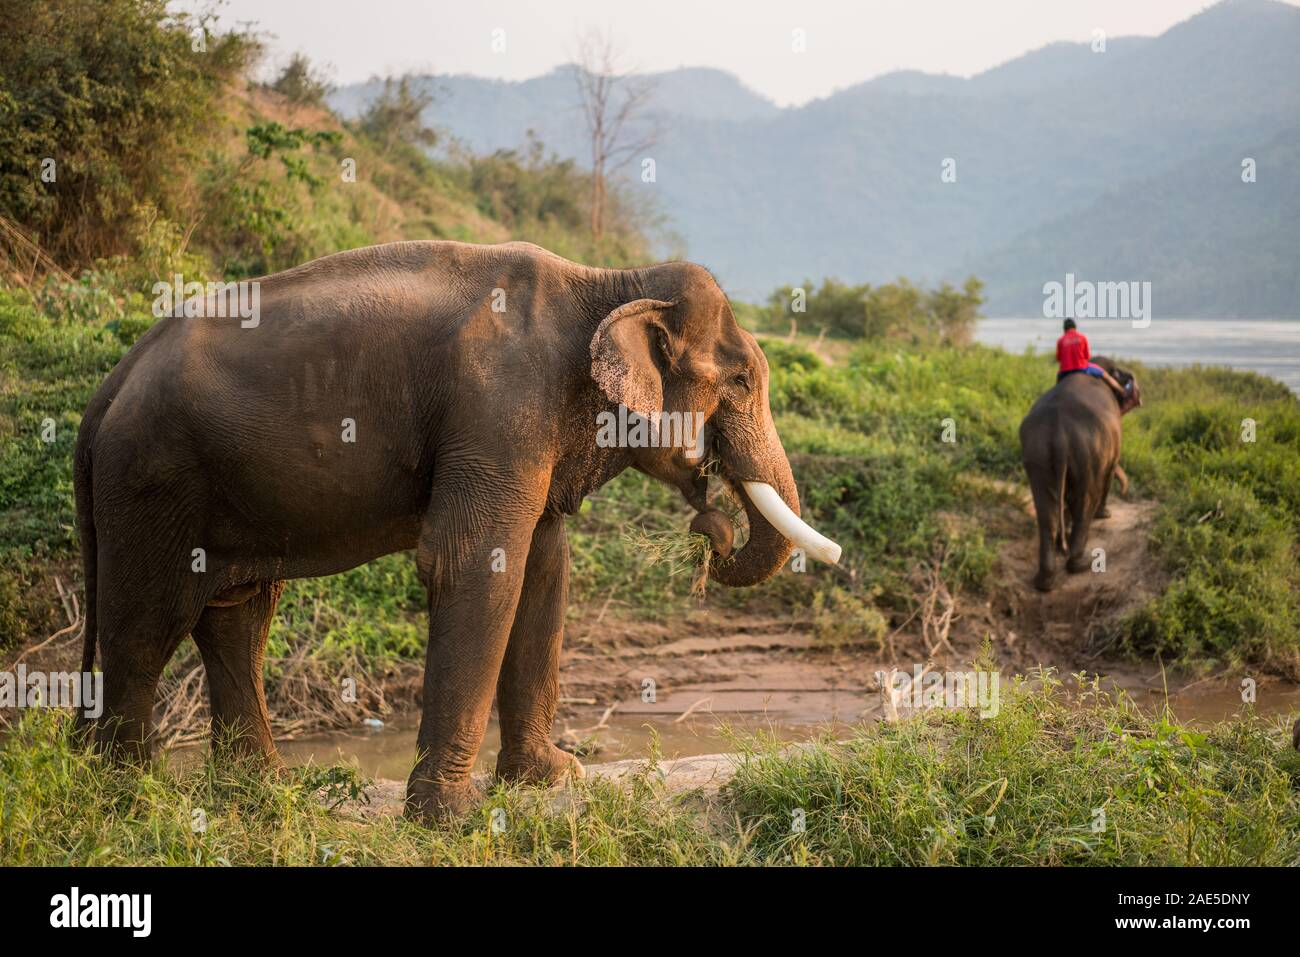 Luang Prabang Elephants Camp, Luang Prabang, Laos, Asia. Stock Photo